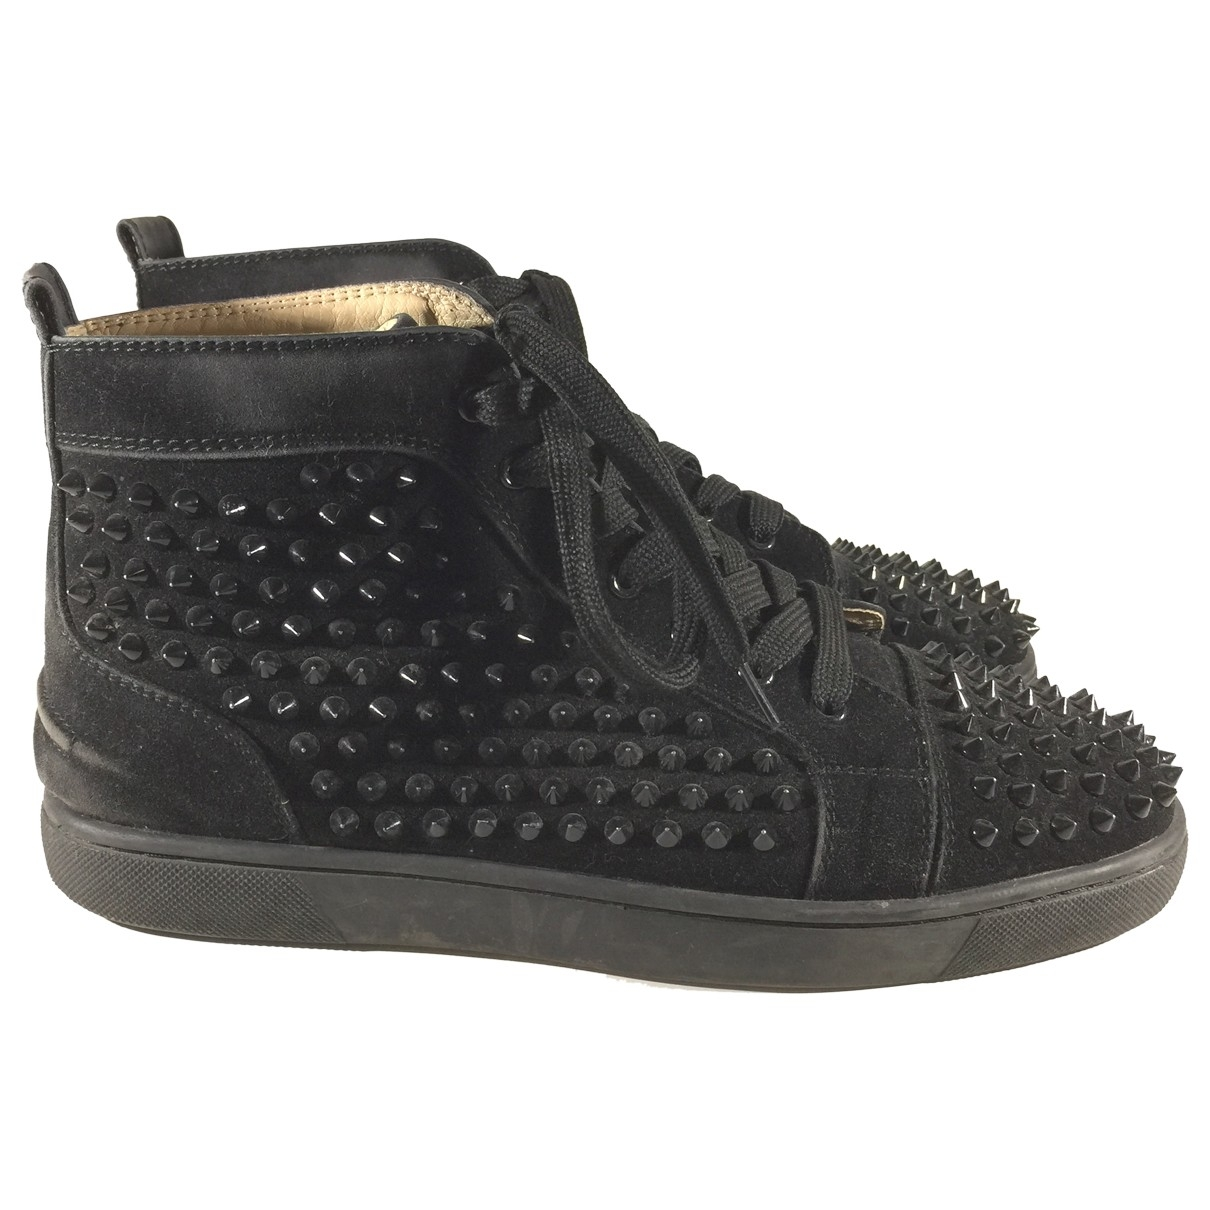 Christian Louboutin Louis Black Suede Trainers for Men 9 UK